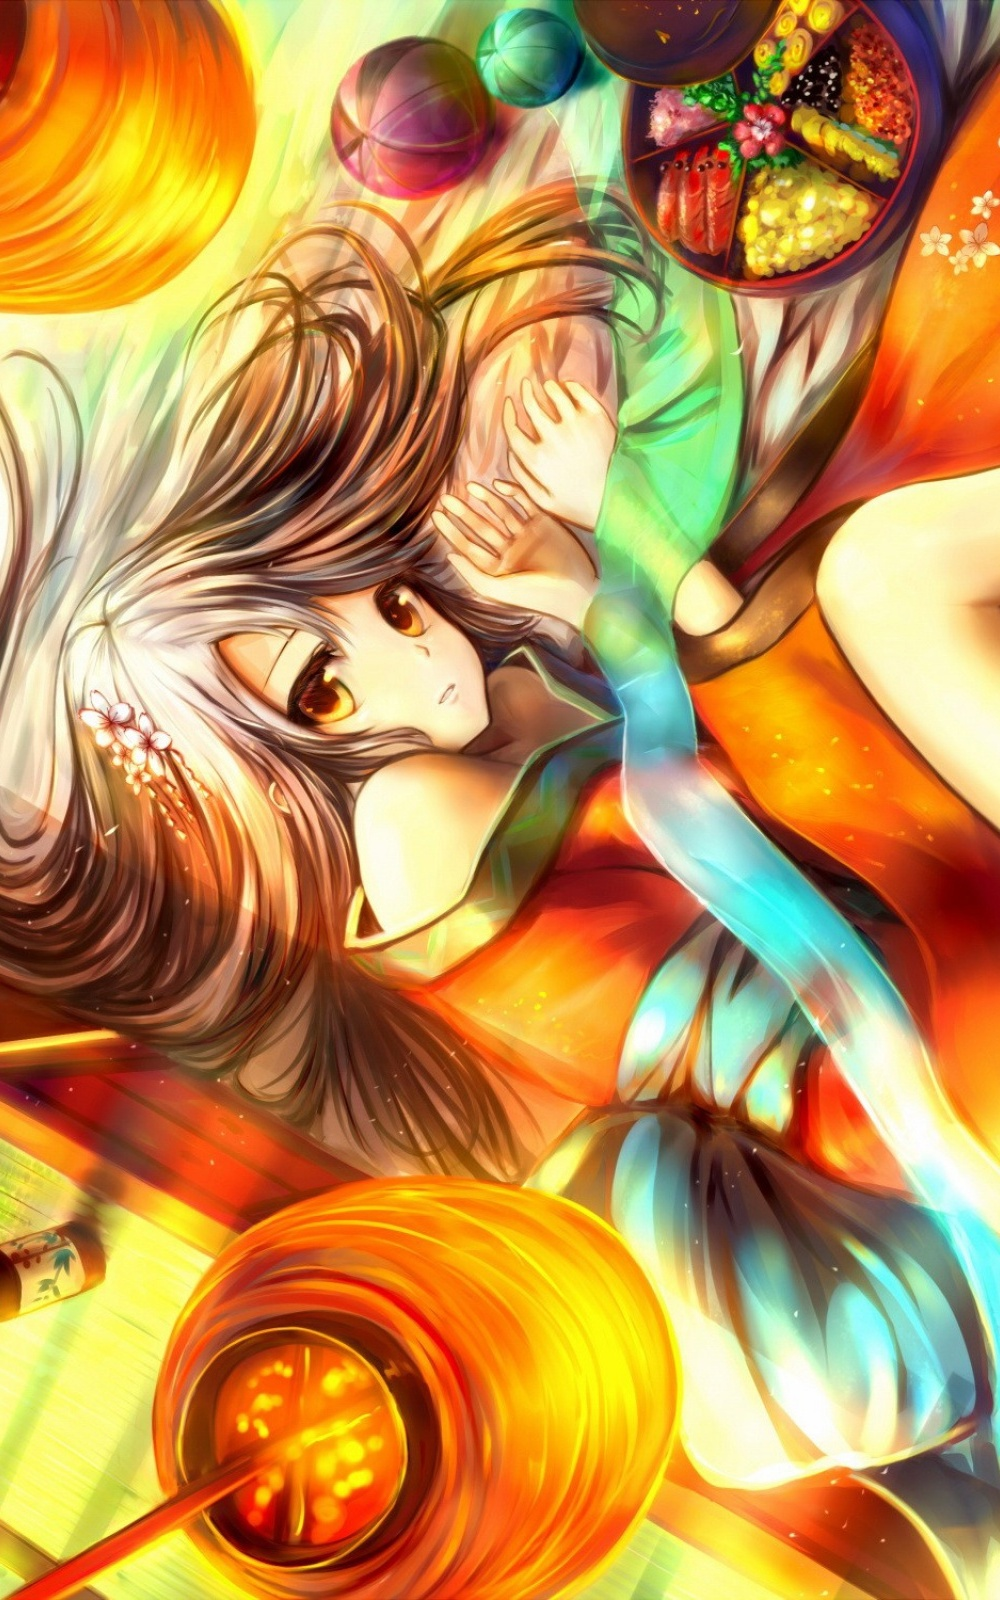 Hd Cartoon Wallpapers For Android 32 Dzbc Org